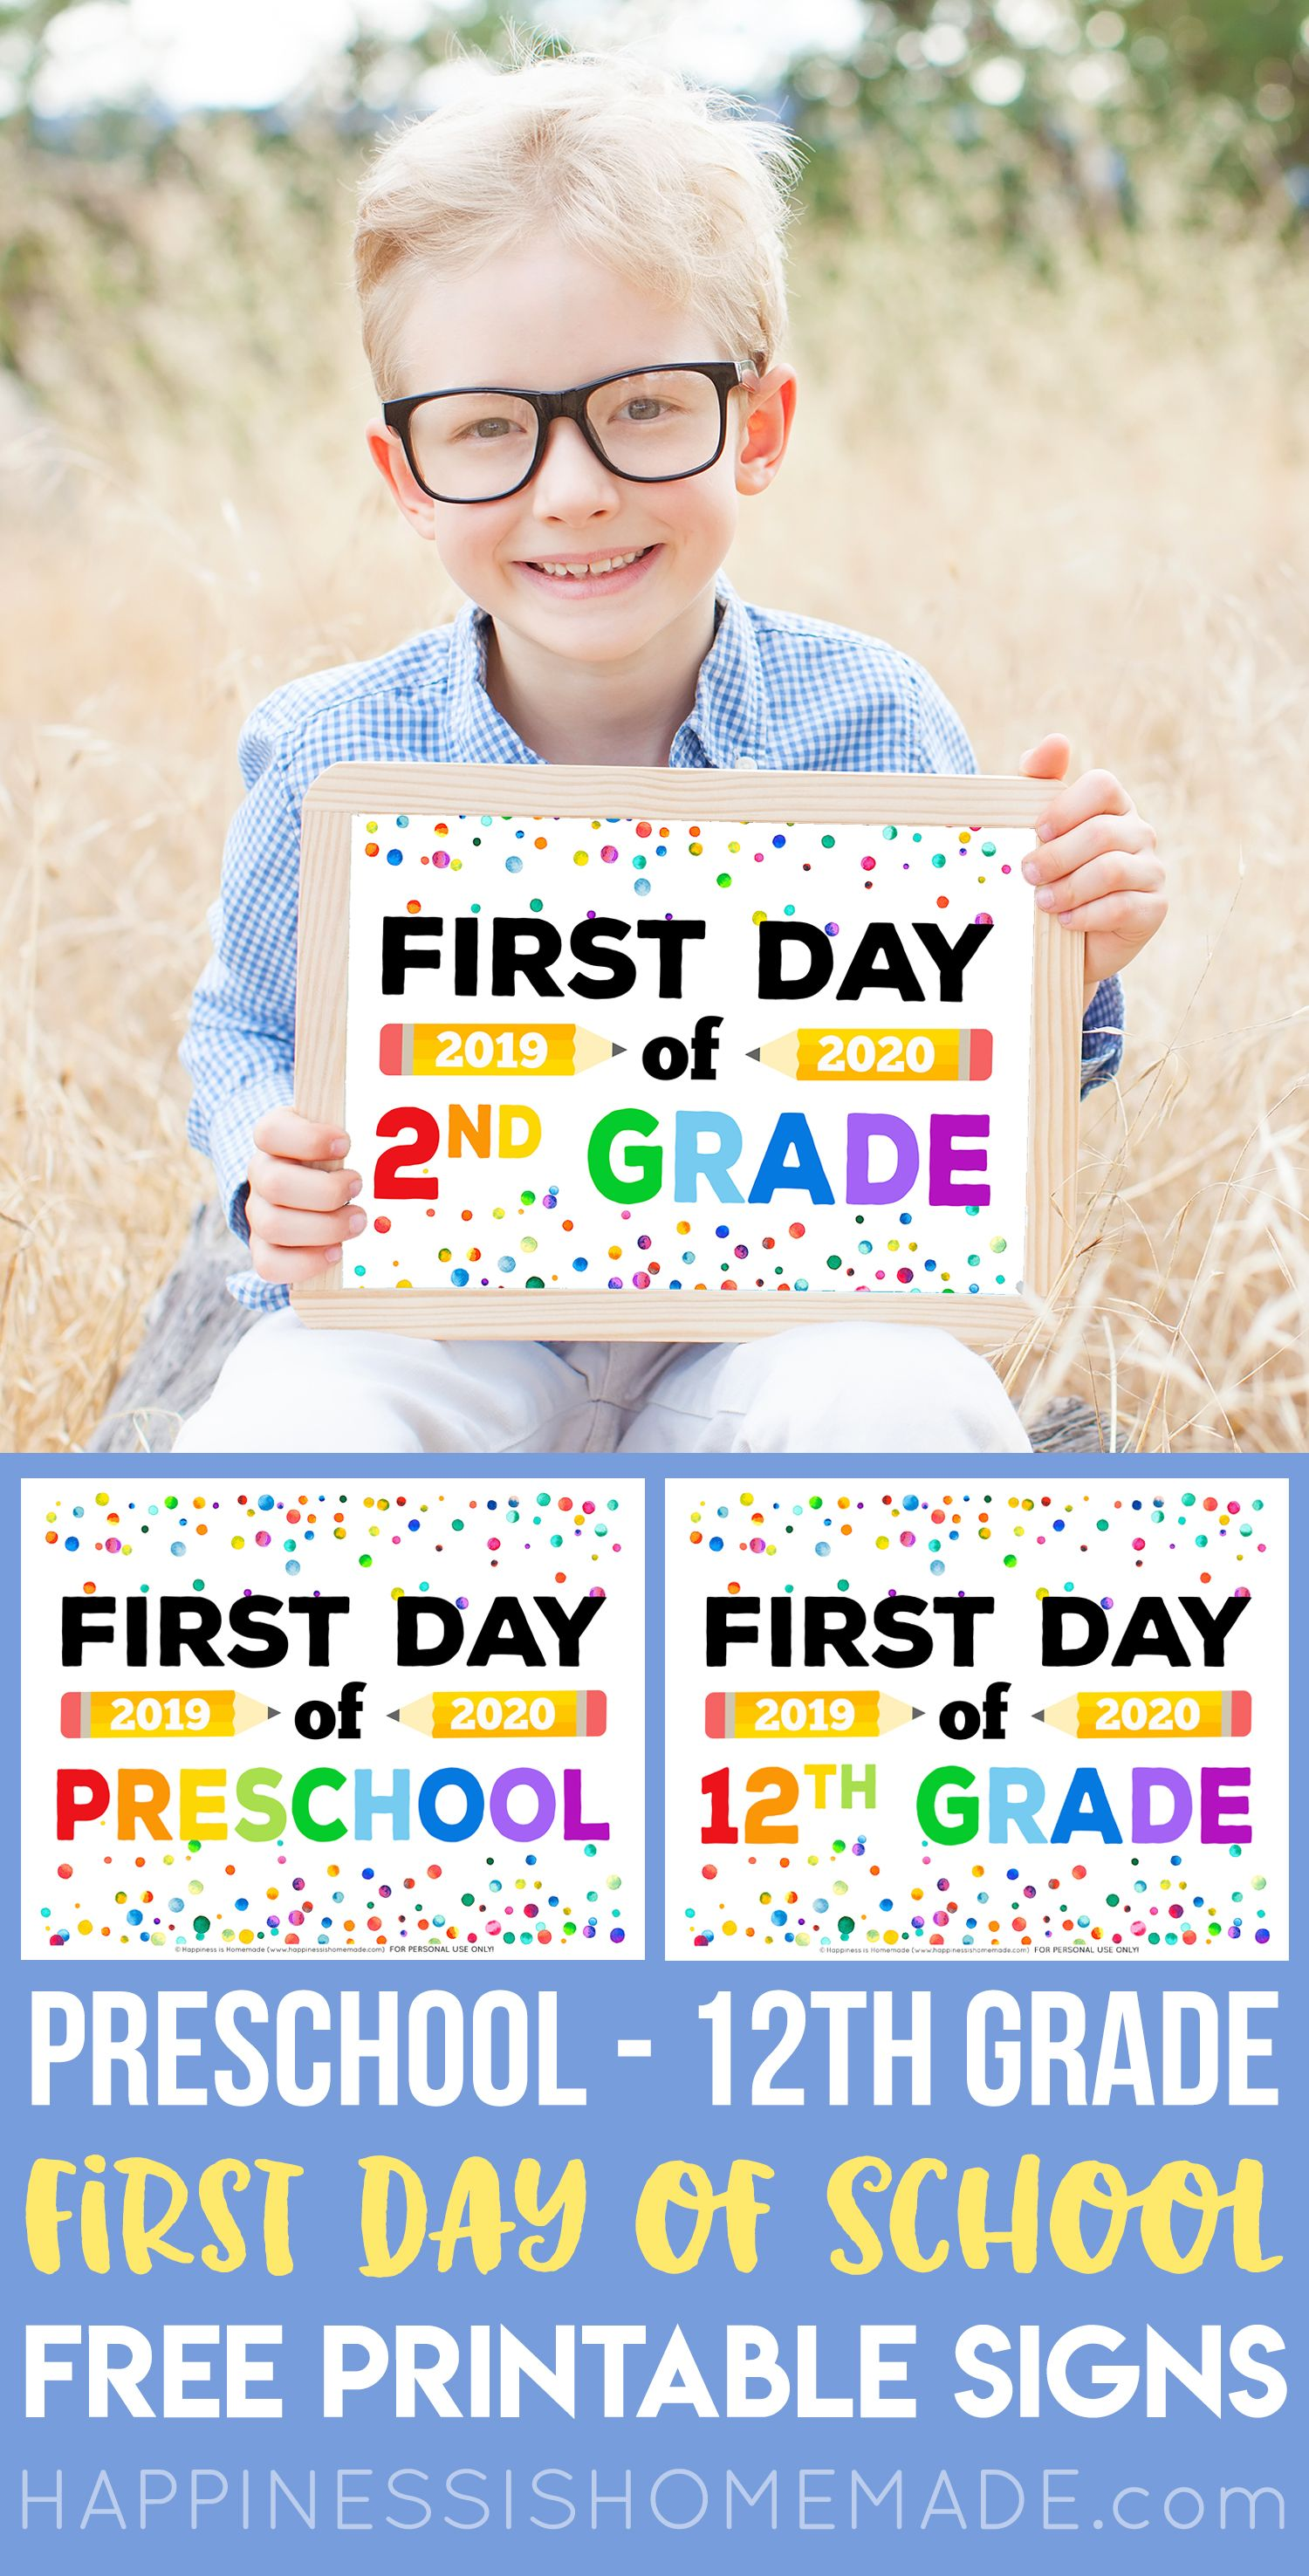 Free First Day Of School Signs Looking For Free Printable First